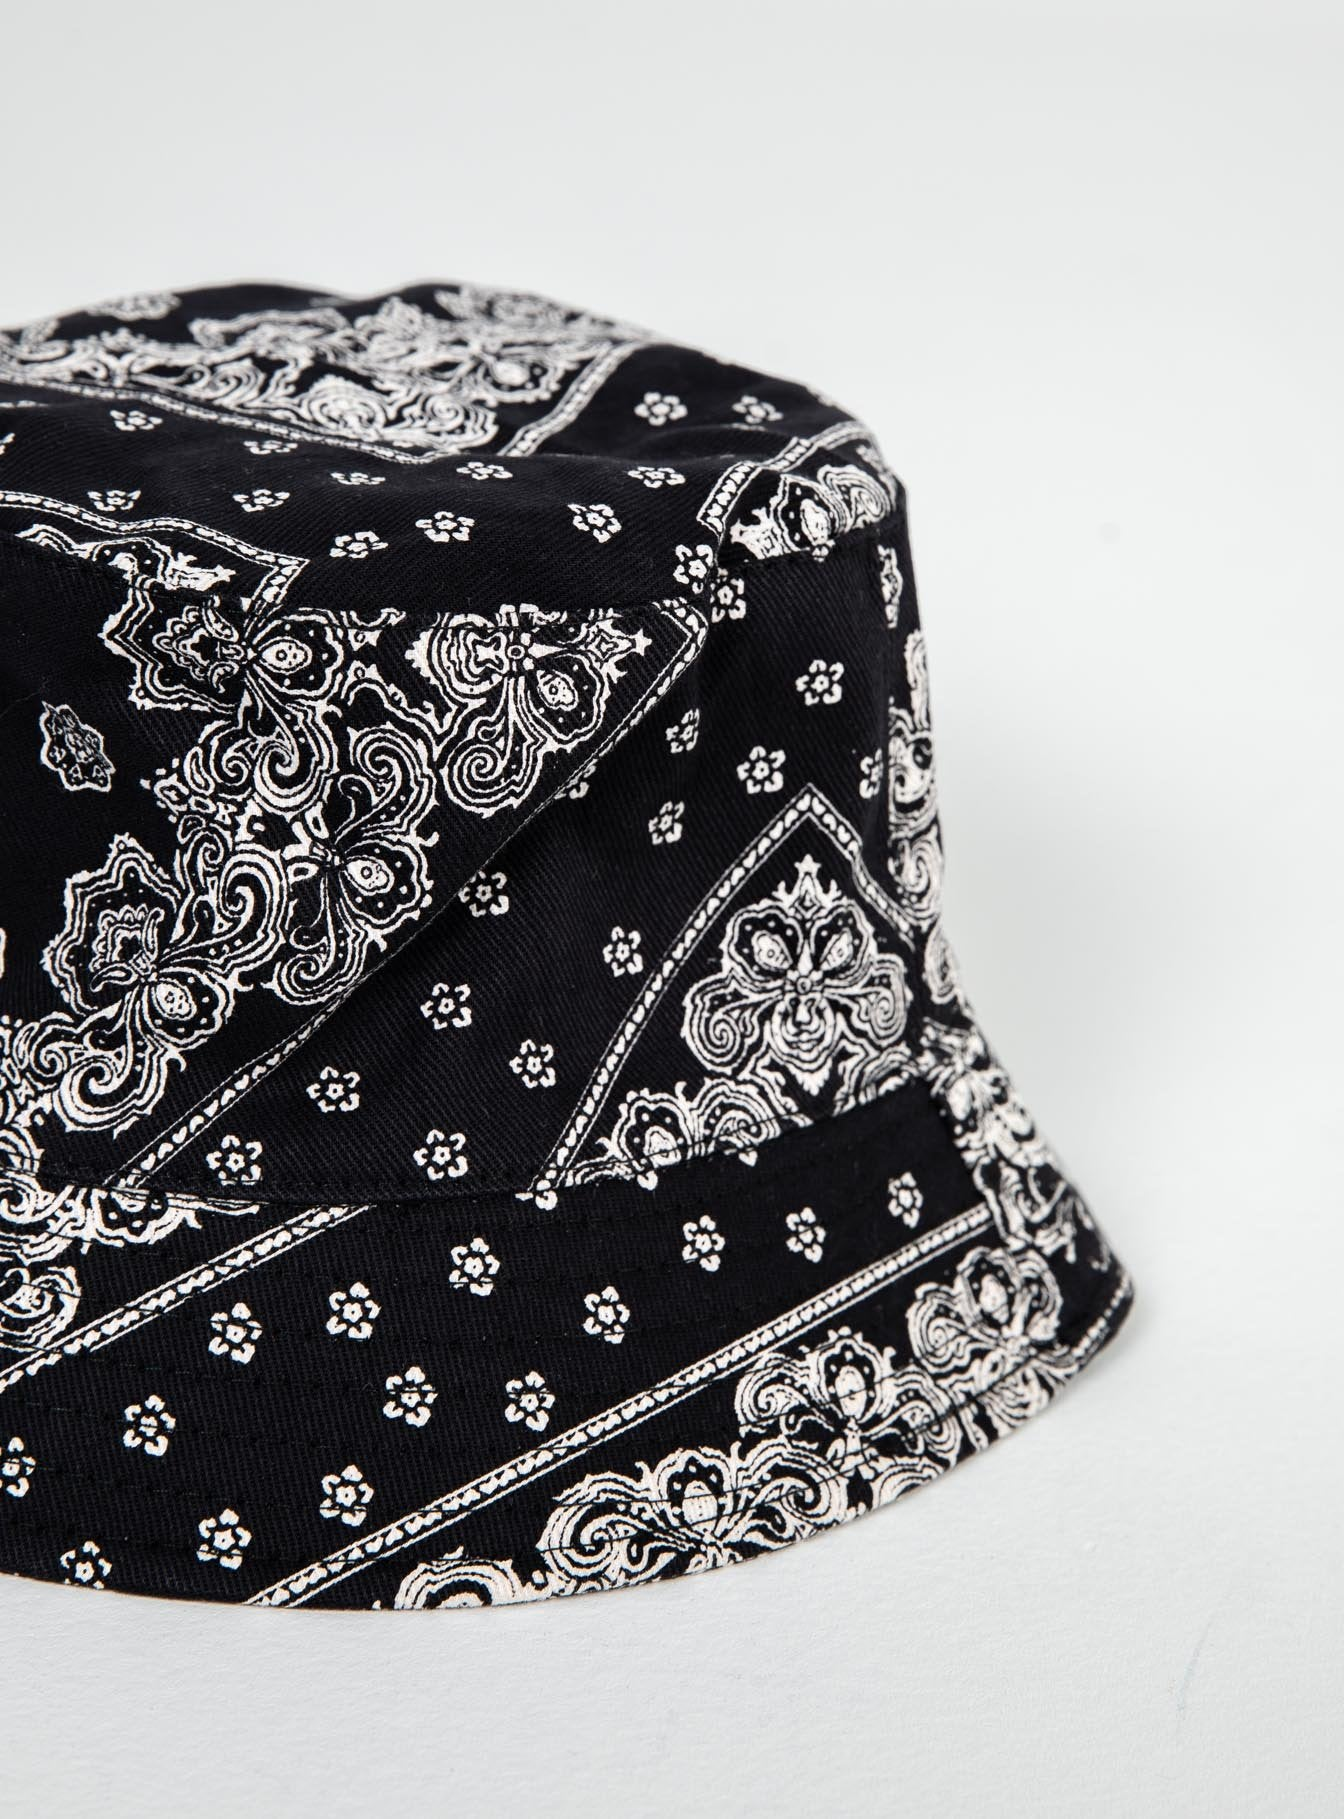 Motel Bucket Hat Bandana Black